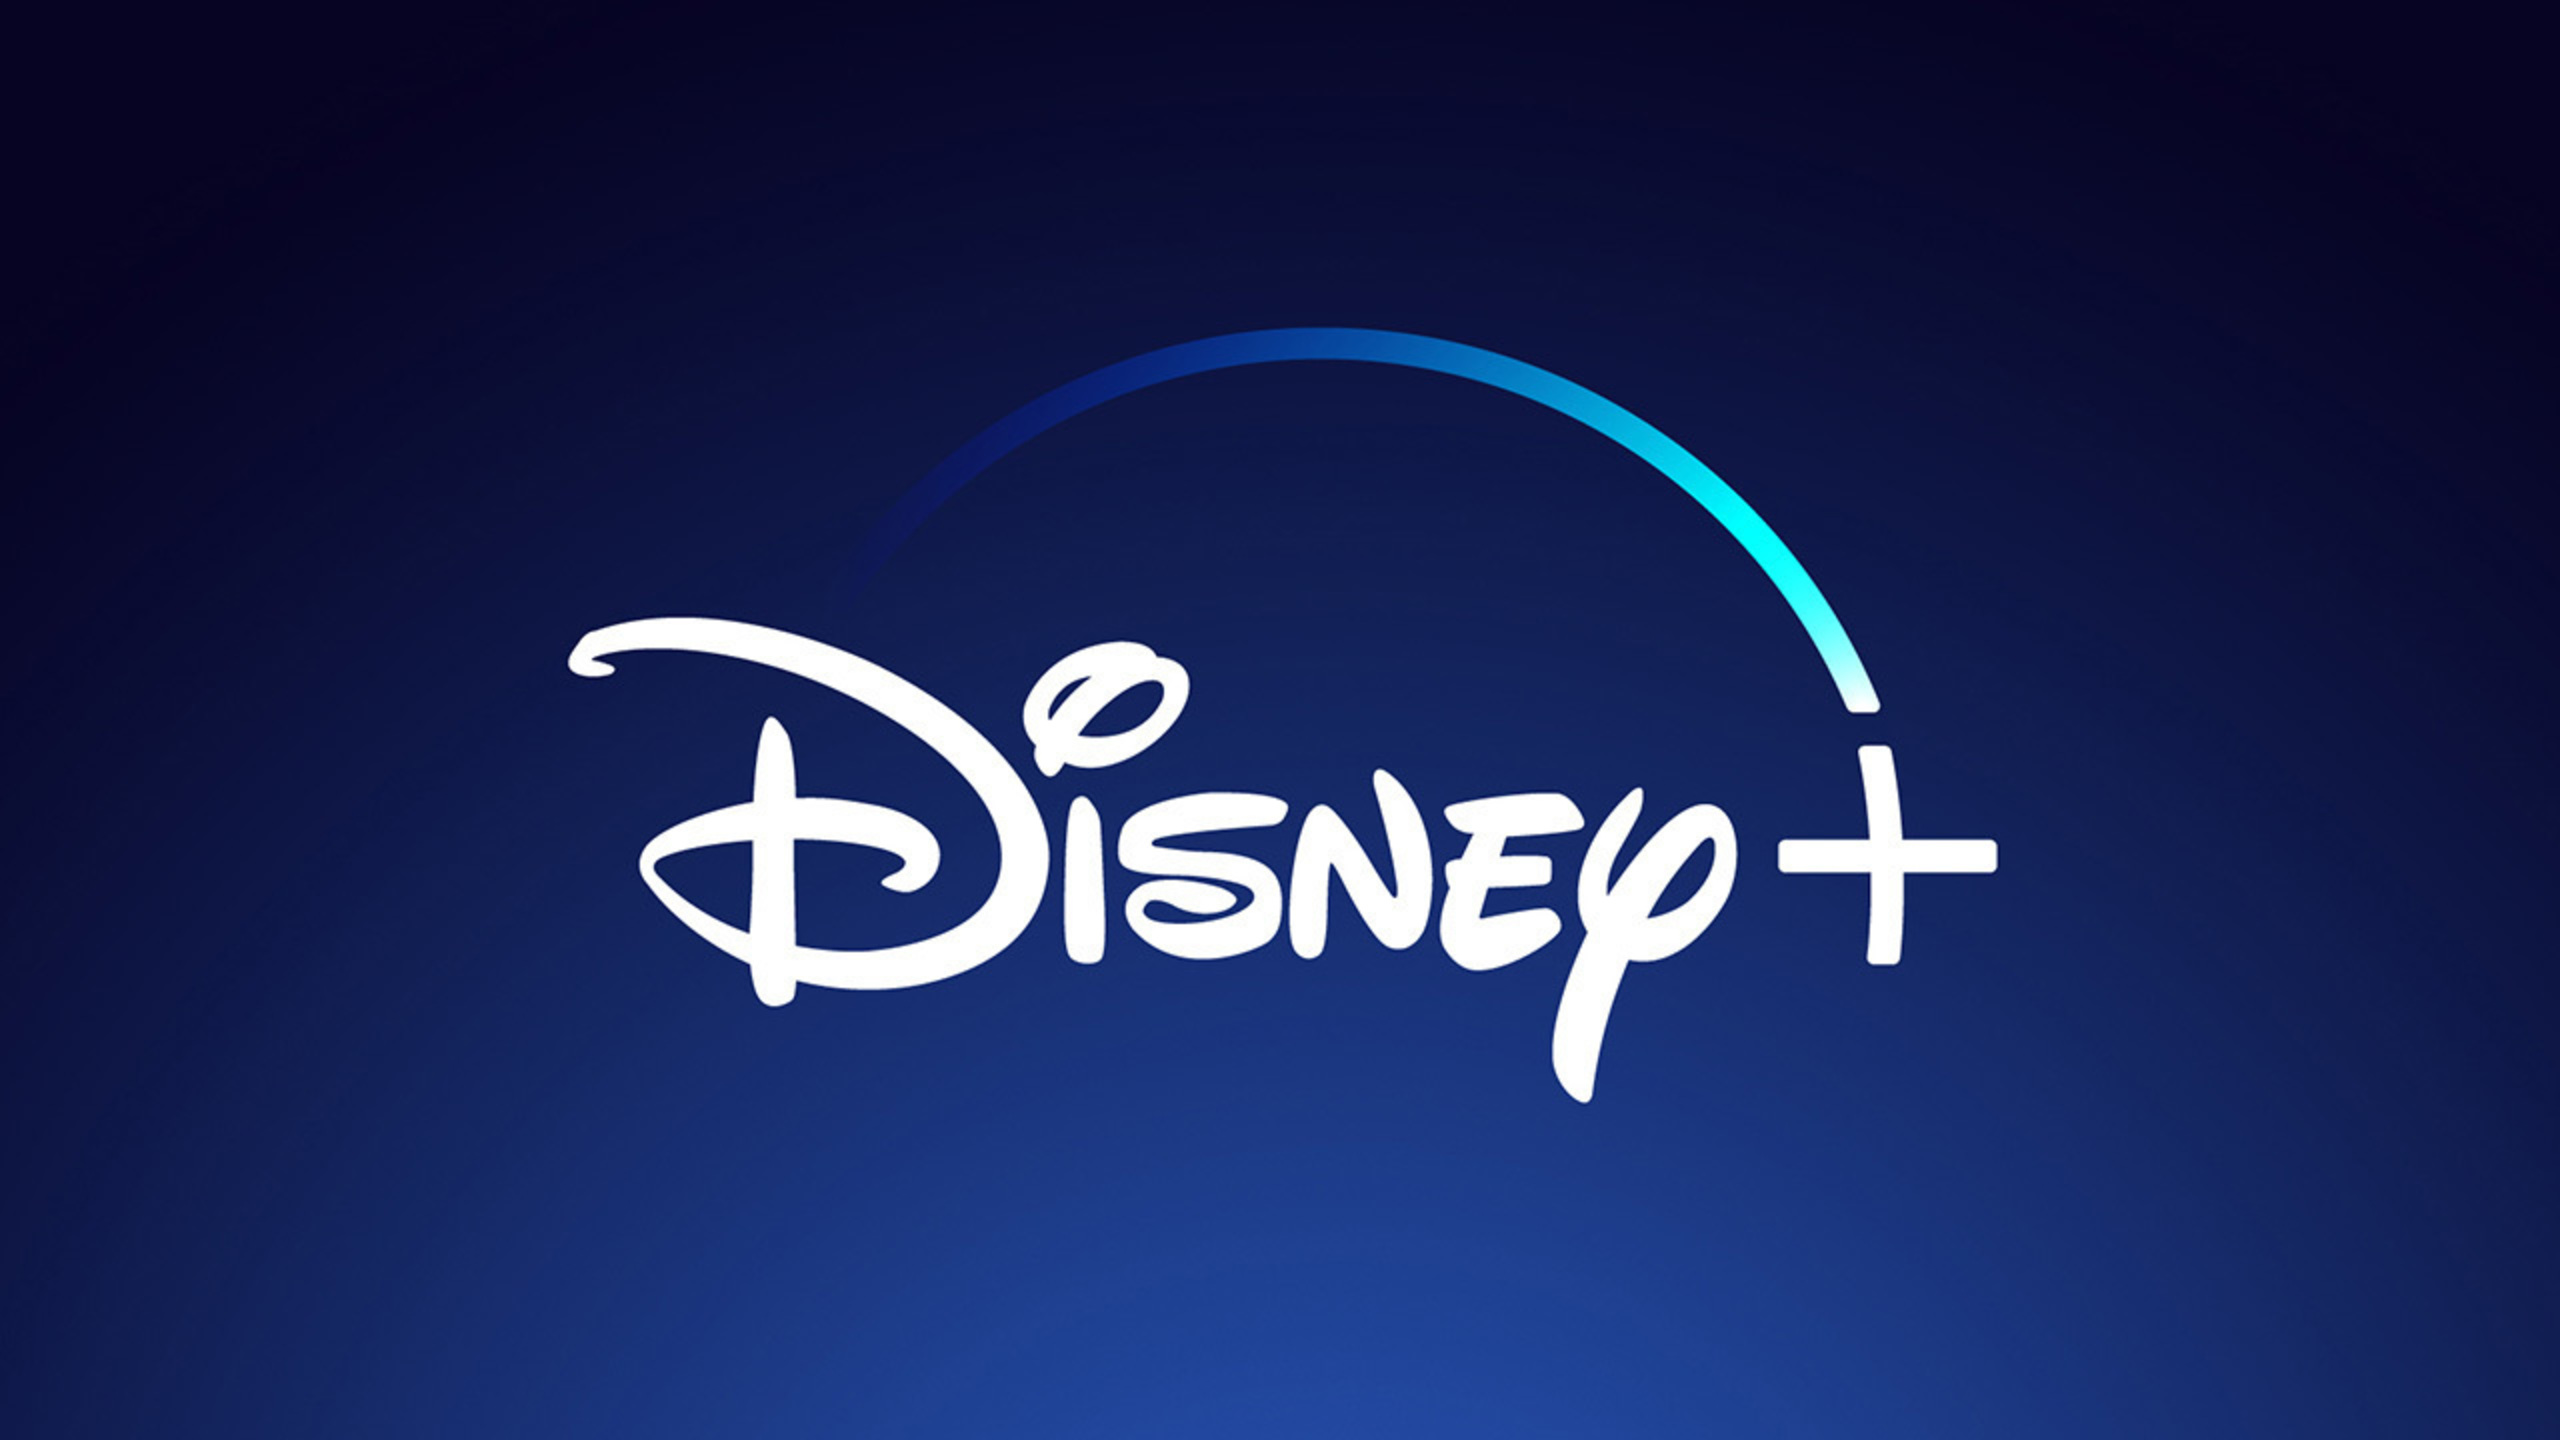 Disney's streaming service to offer $12.99 bundle deal with Hulu, ESPN+